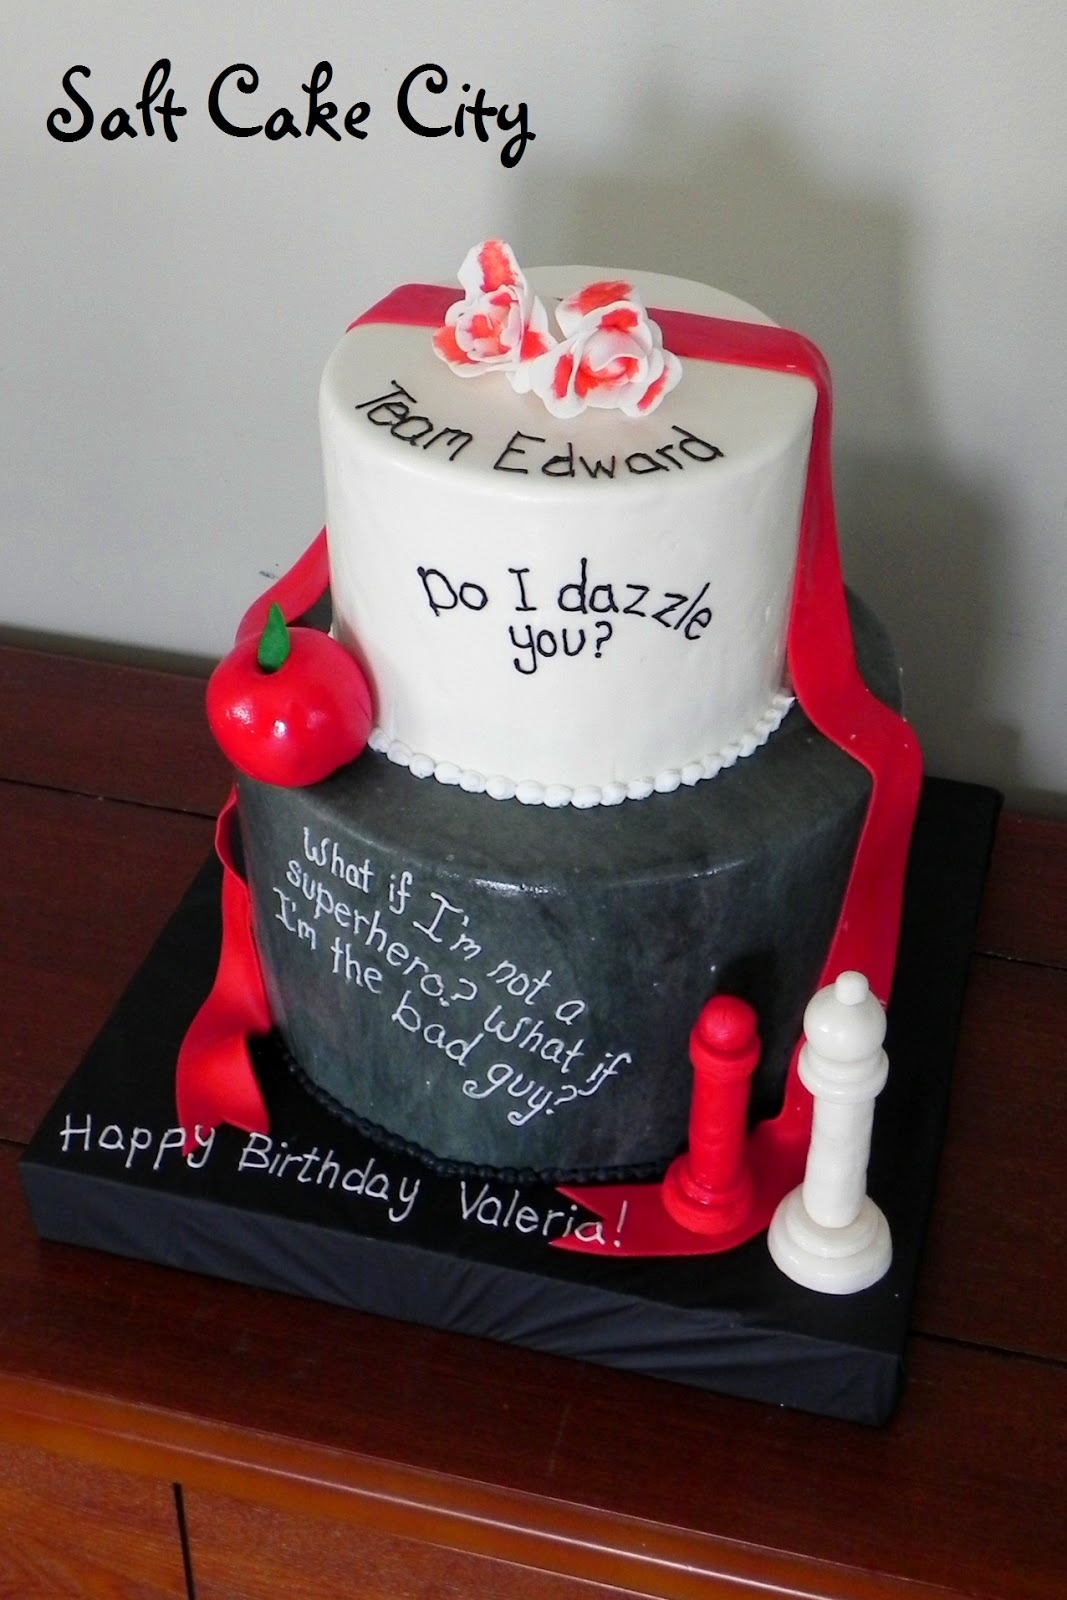 Birthday Cake Photo With Quotes : Quotes About Birthday Cake. QuotesGram